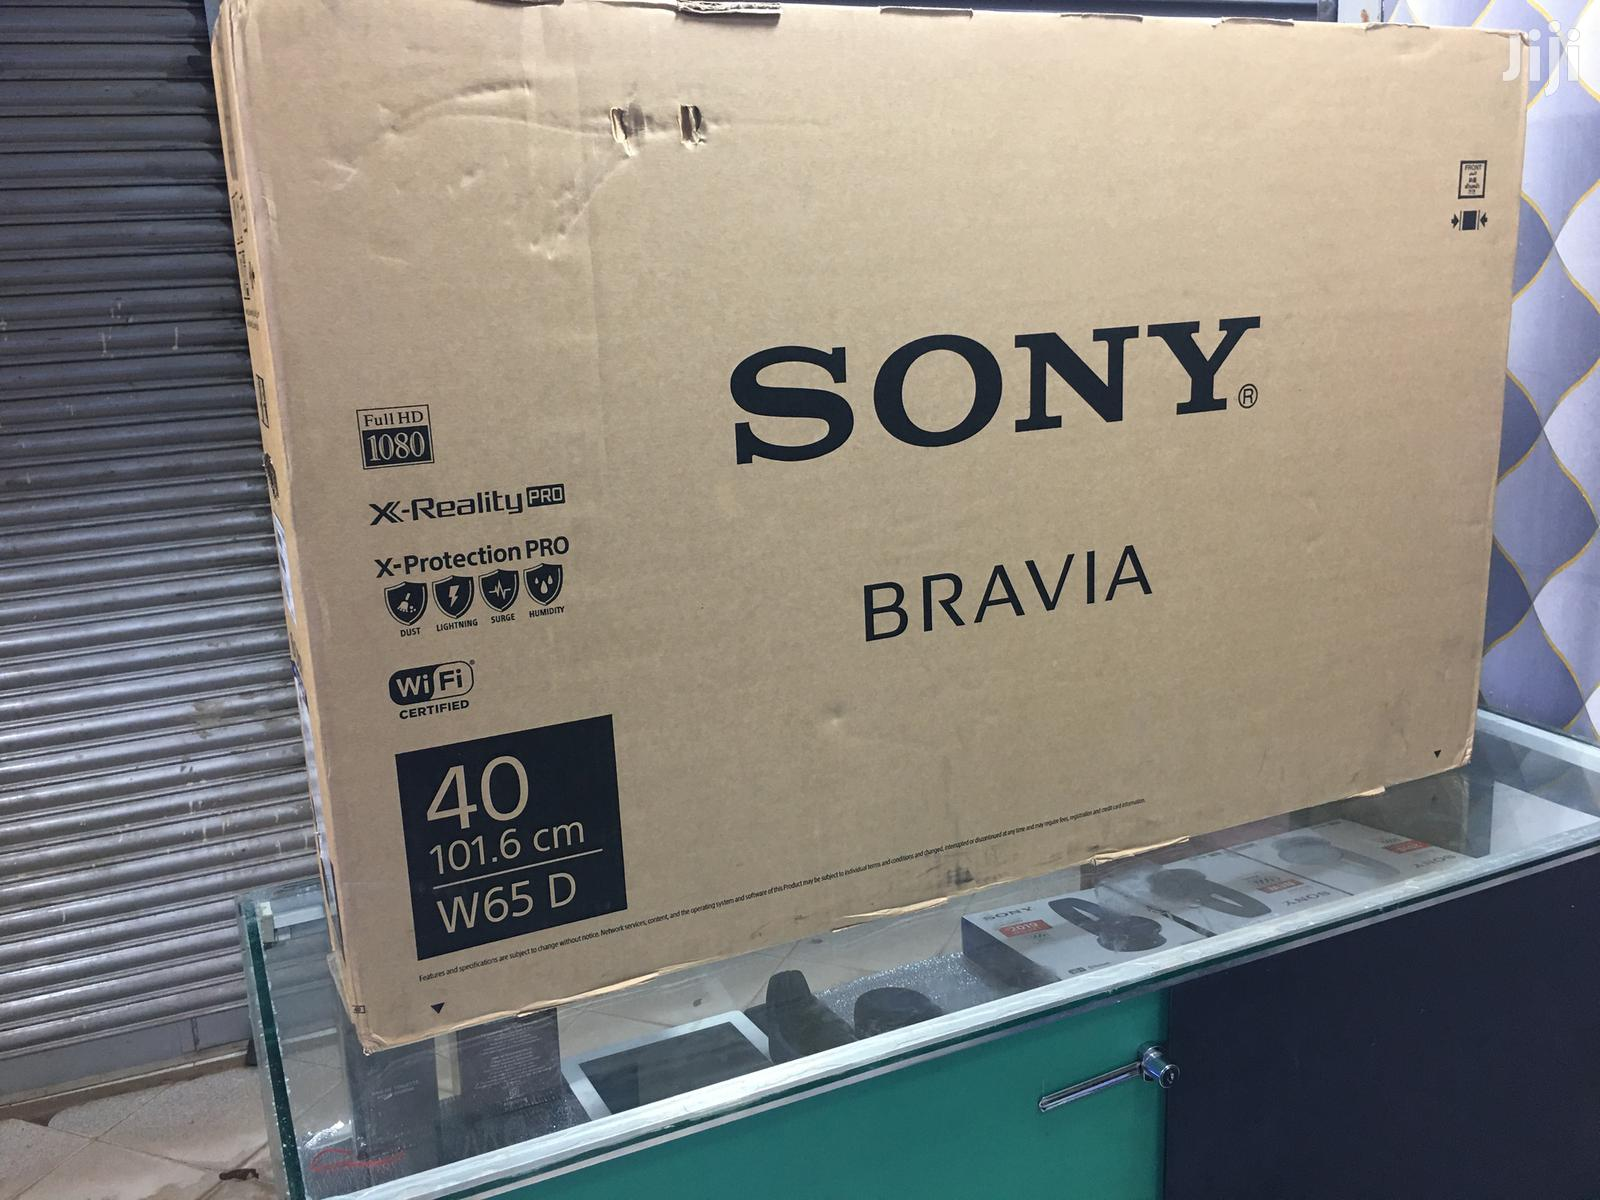 Sony 40 Inches Smart Fullhd